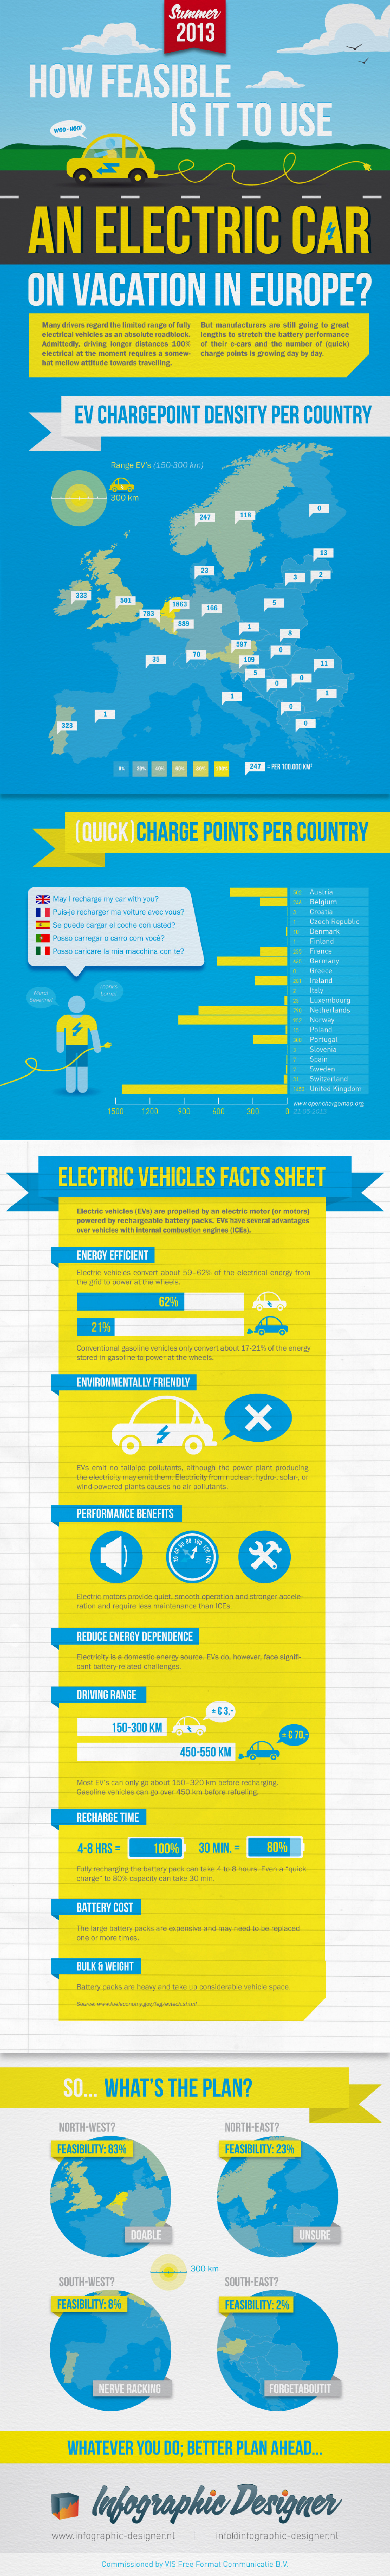 How feasible is it to use an electric car on vacation in Europe? Infographic